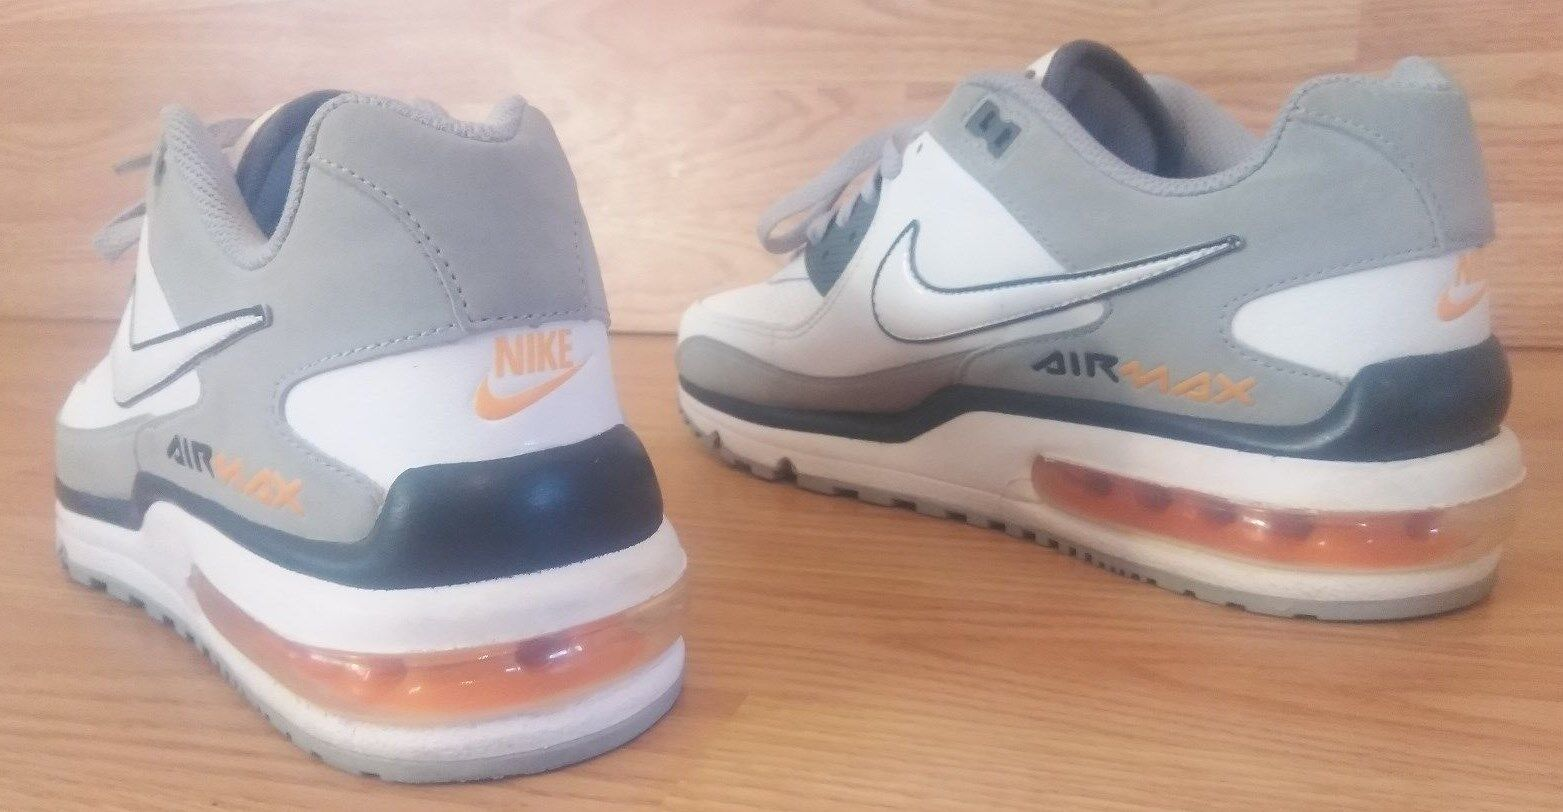 low priced 66d1d 0fba1 ... Nike Nike Nike Air Max Shoes, Gray White, Orange Trim - 2011, ...